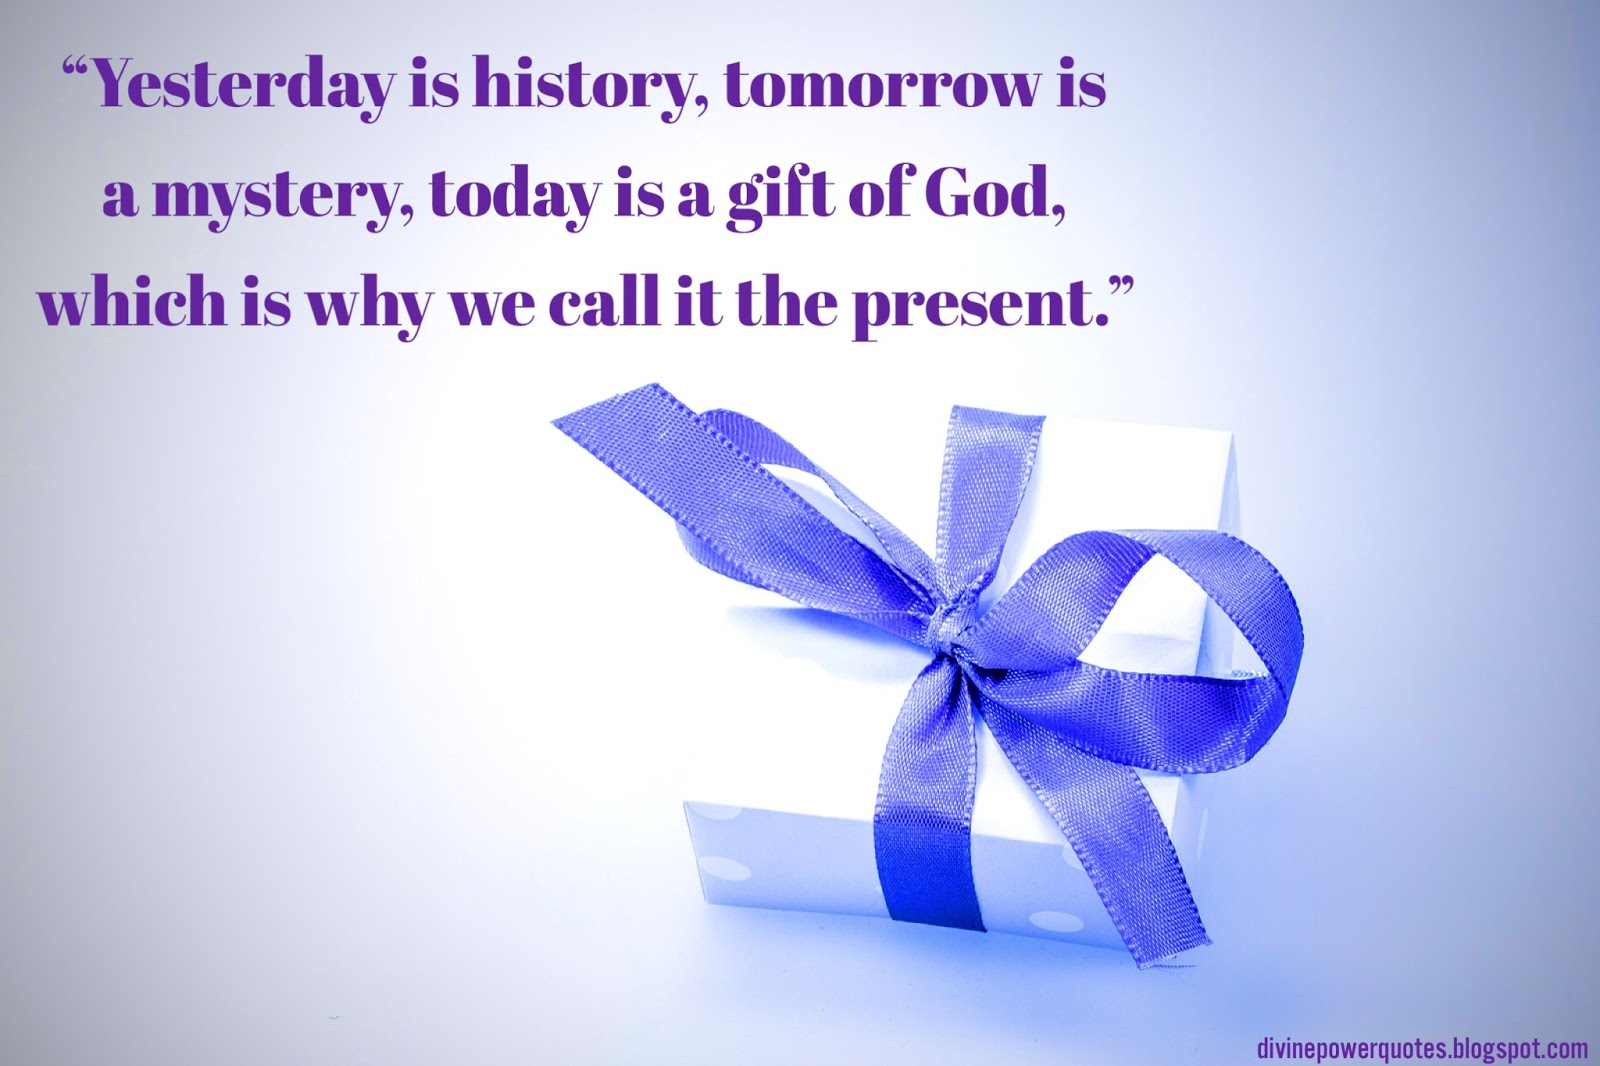 Divine Power Quotes Today Is A Gift Of God